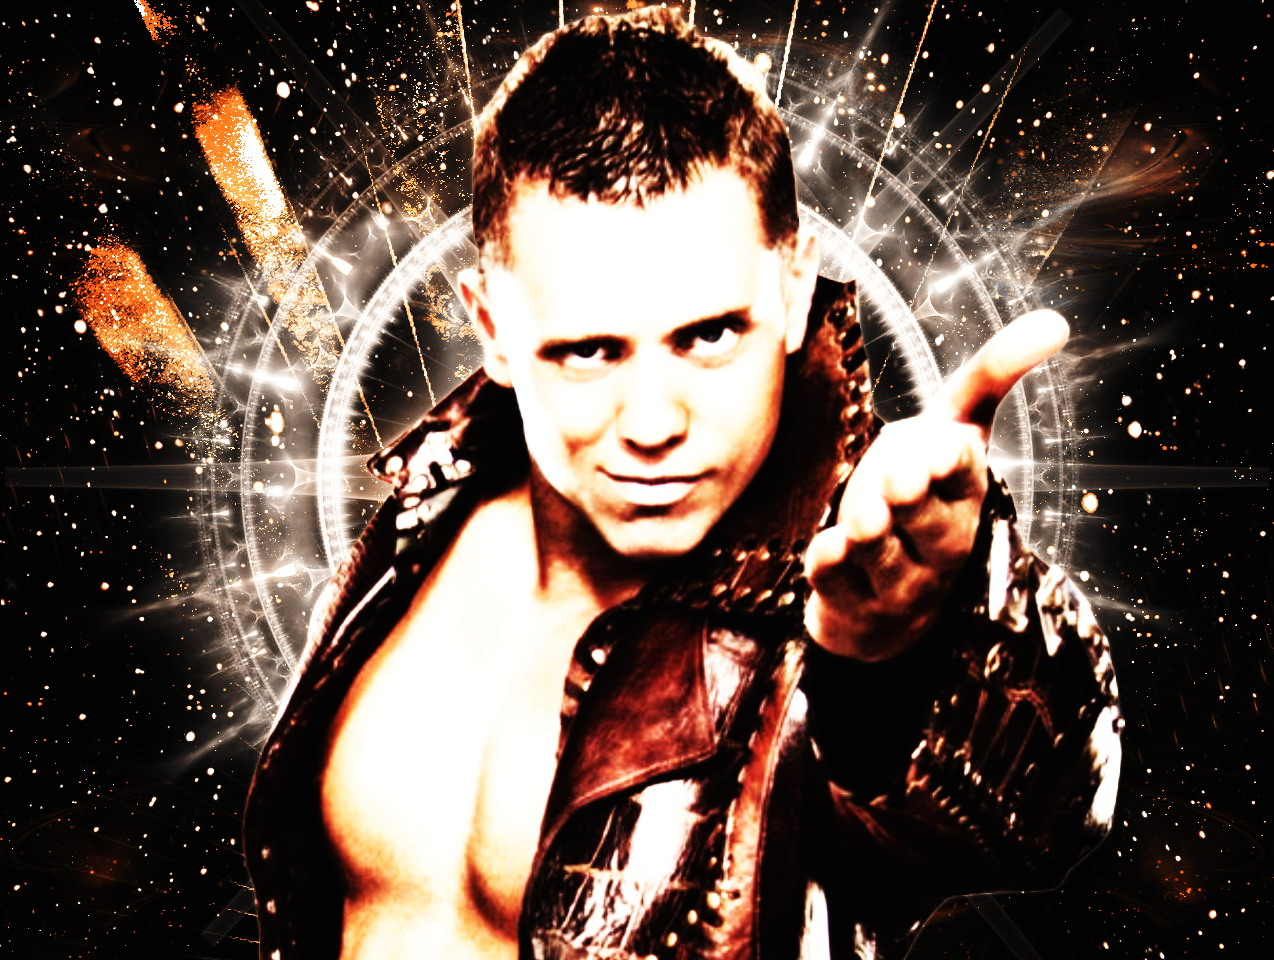 http://images5.fanpop.com/image/photos/31600000/The-Miz-wwe-31689195-1274-960.jpg